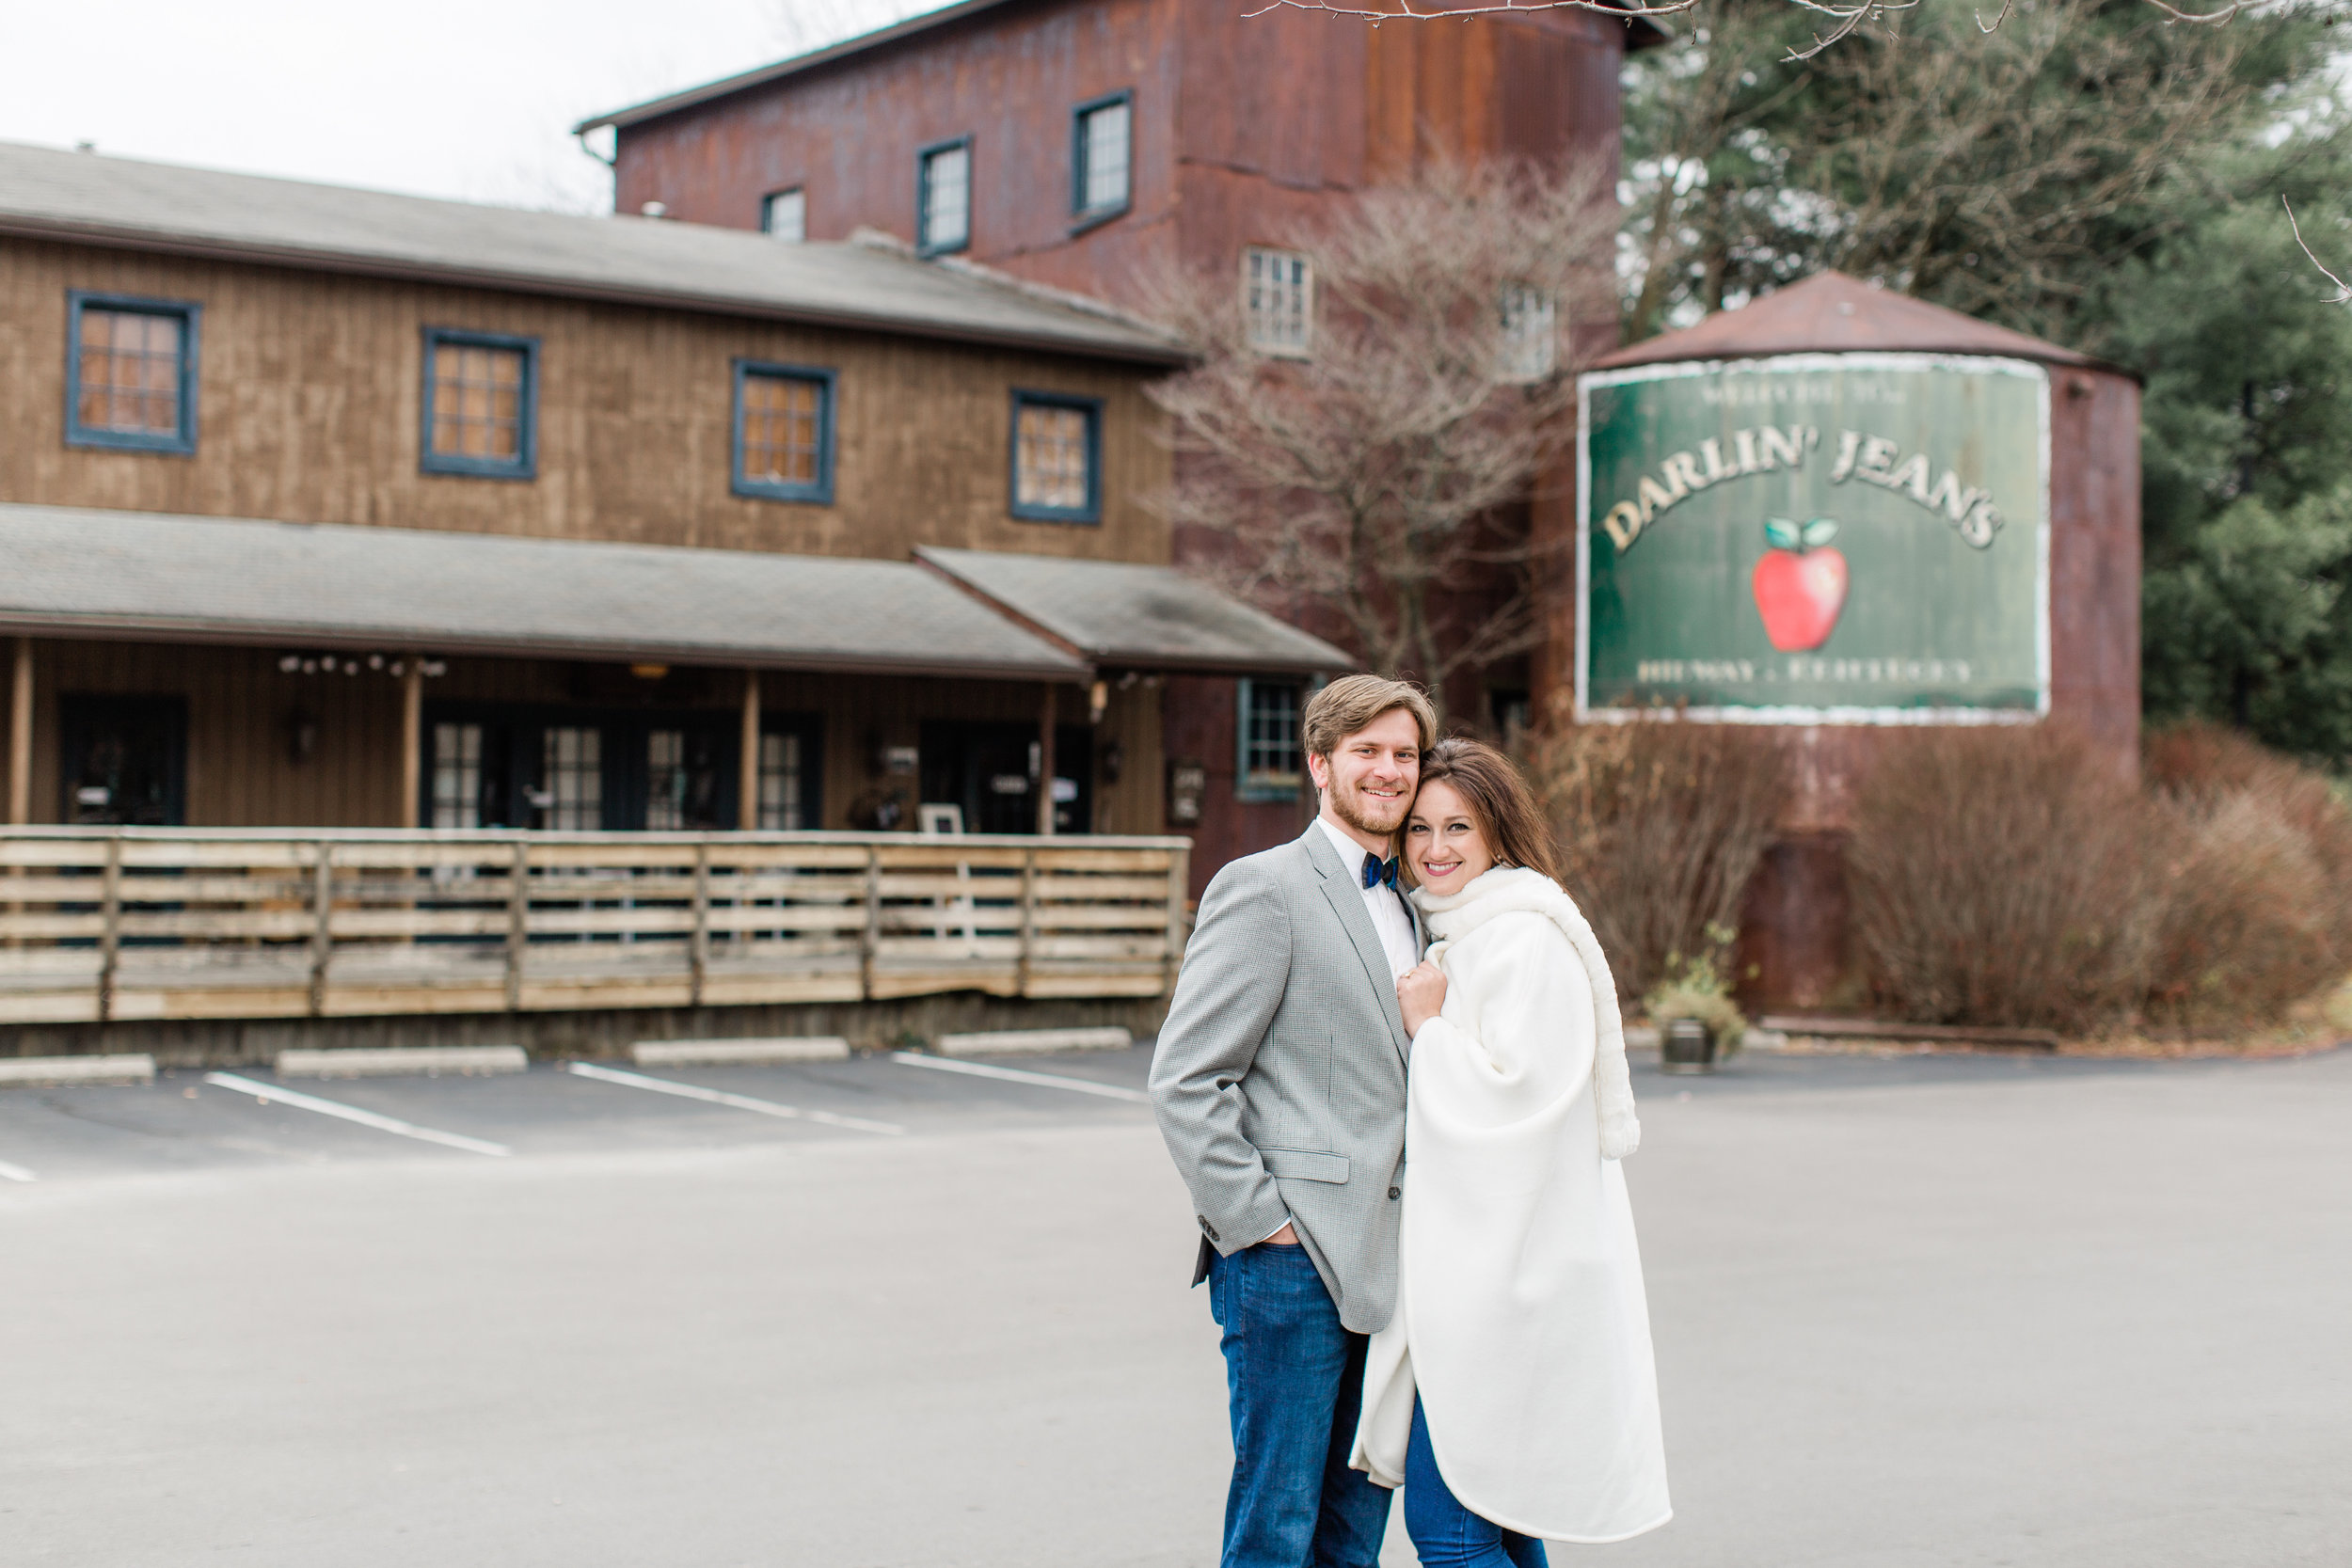 This snuggly winter engagement session took place in Midway, Kentucky. We hit all of Andrew and Blaire's favorite places that have been very special to them during their dating and proposal. I don't normally love winter engagement sessions because it's so cold, but these two were SO fun (just look at all the giggles) and very sweet with each other, they made it worth every trip to the car to warm back up, haha. I hope you all enjoy these pictures and stay on the look out for their wedding that is happening later this summer.